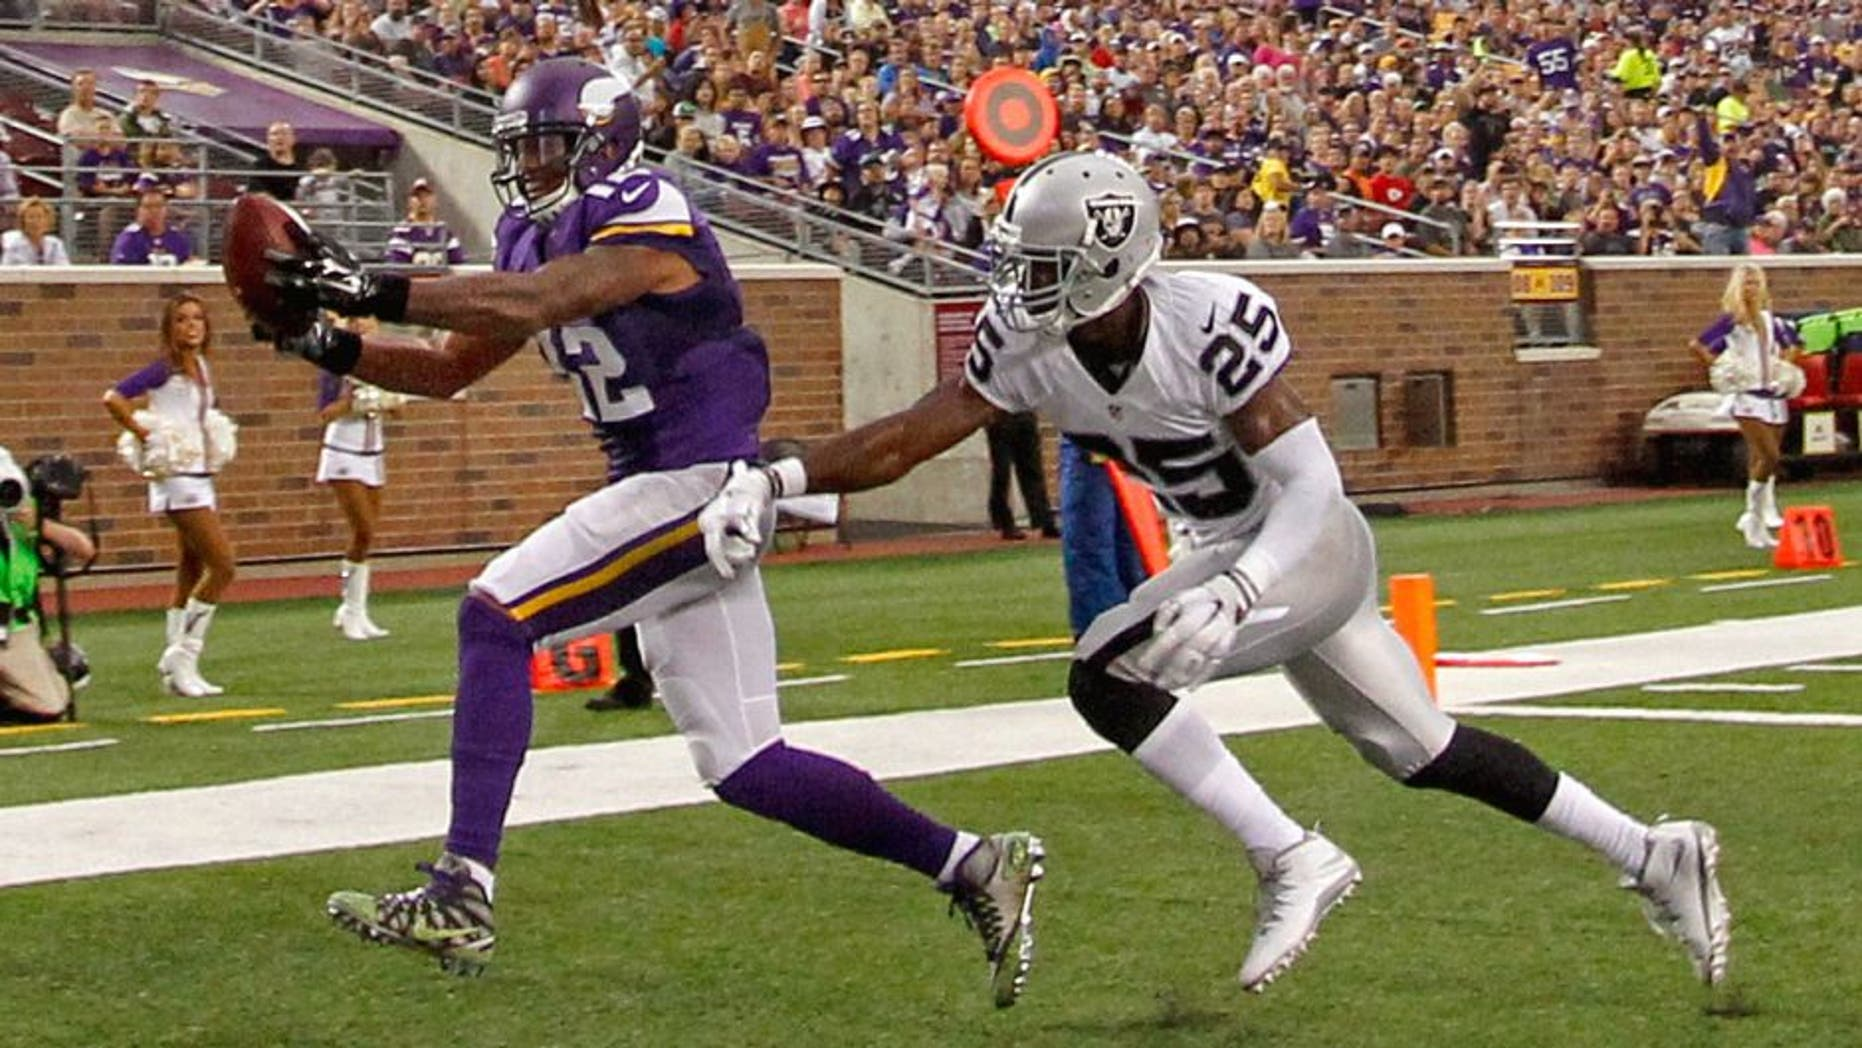 Aug 22, 2015; Minneapolis, MN, USA; Minnesota Vikings wide receiver Charles Johnson (12) catches a pass past Oakland Raiders cornerback D.J. Hayden (25) for a touchdown in the second quarter at TCF Bank Stadium. Mandatory Credit: Bruce Kluckhohn-USA TODAY Sports